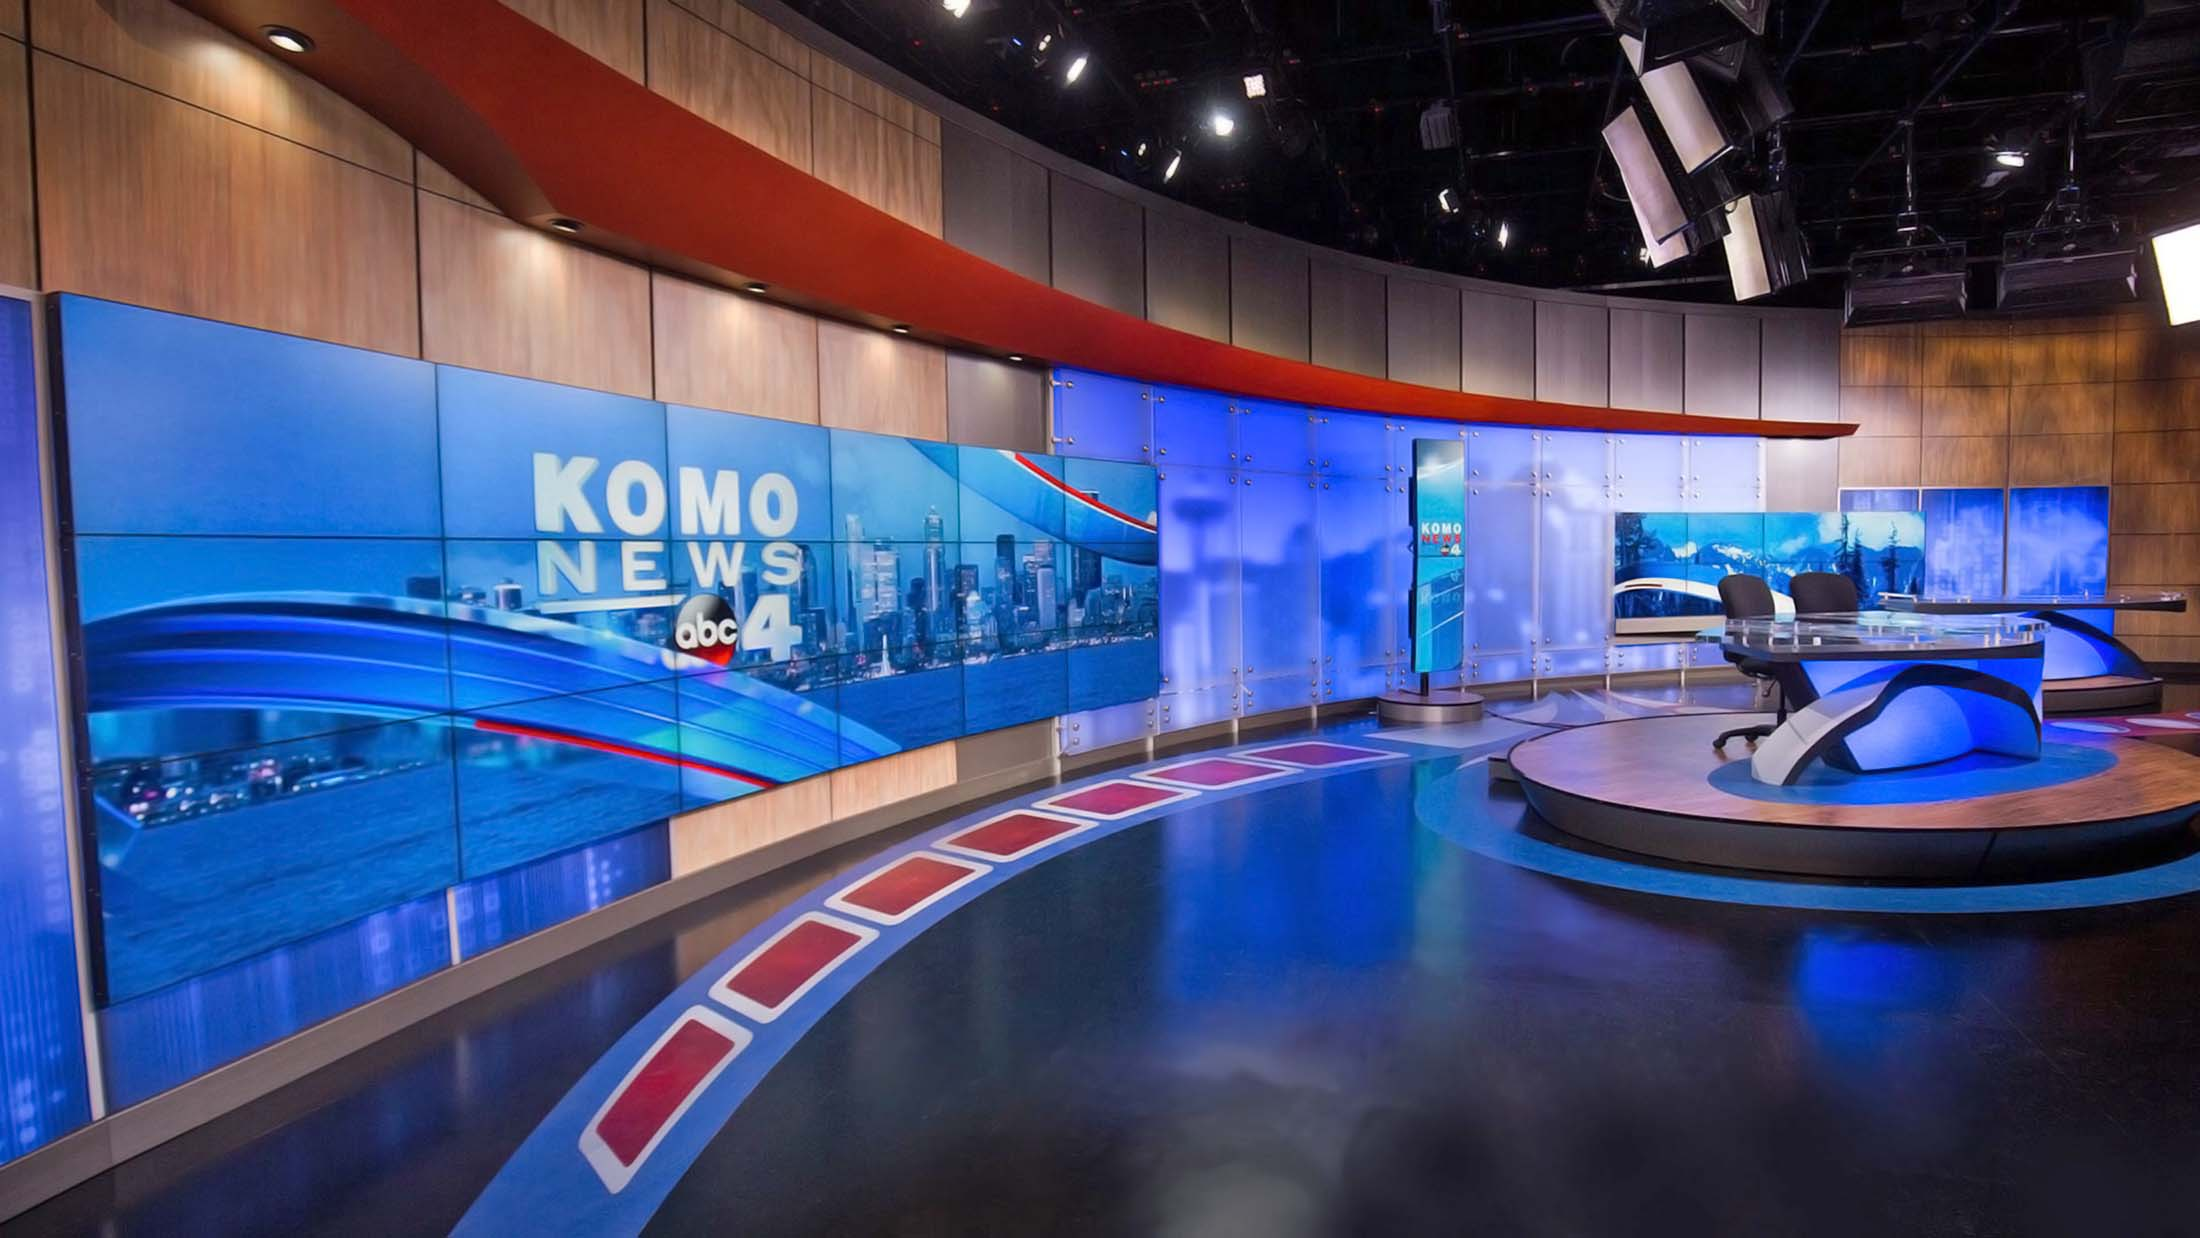 KOMO 4 News On-Air Studio